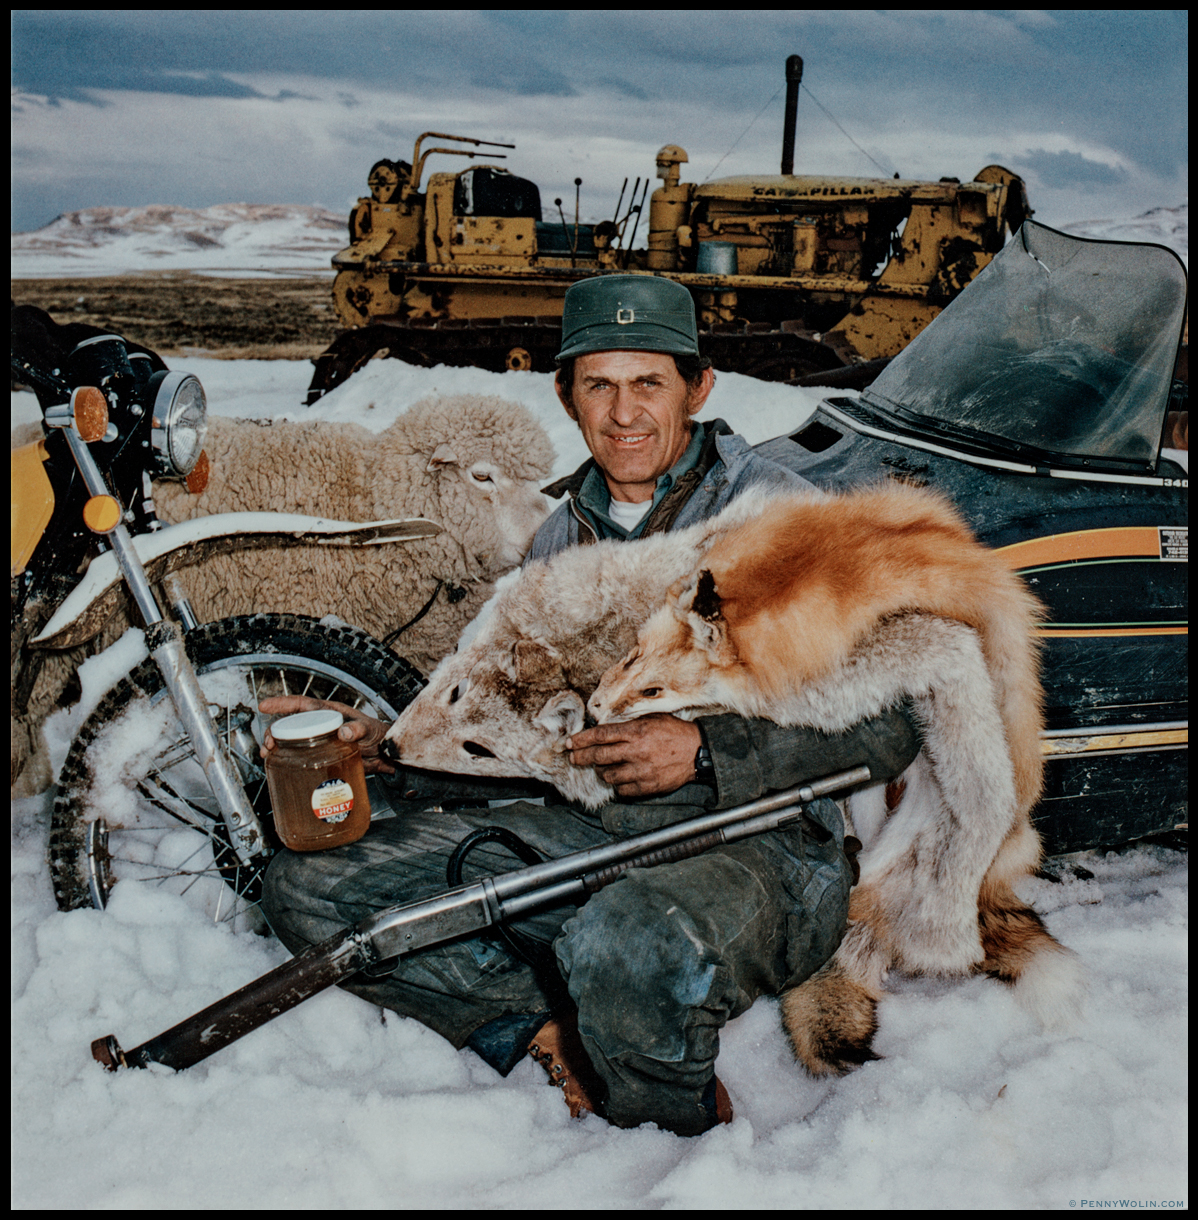 Gil Smith, Bosler Coyote Hunter